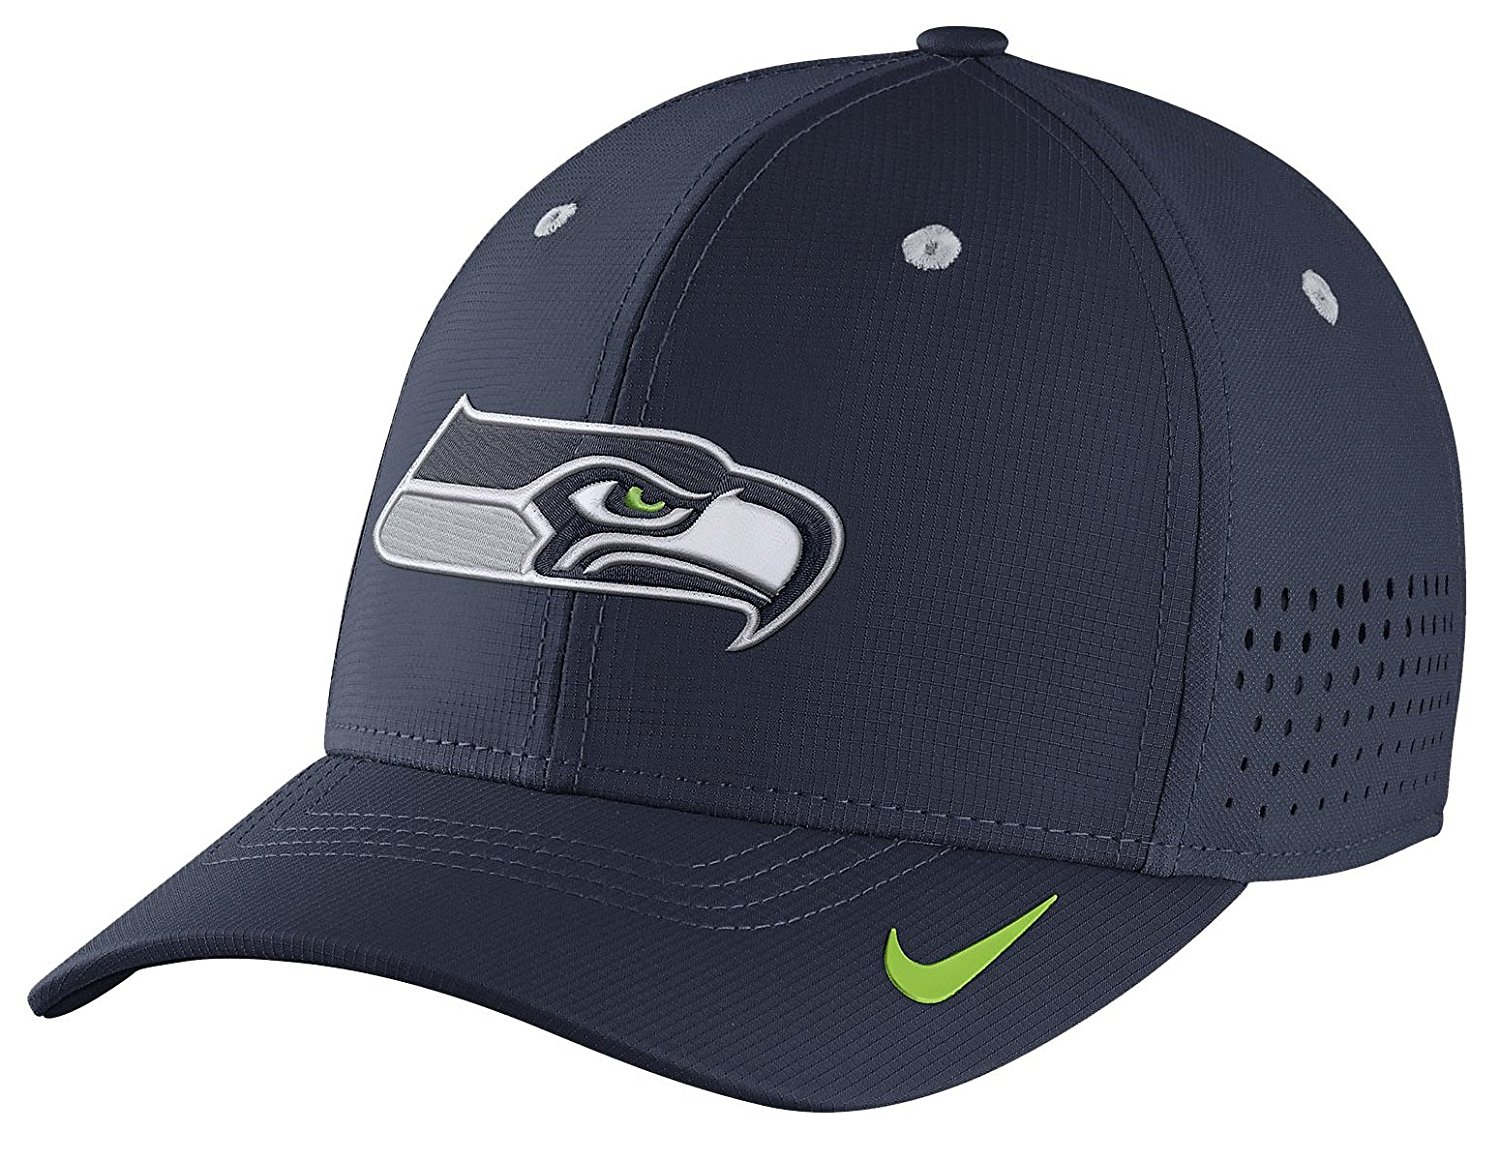 3d373871934bf Get Quotations · Nike Legacy Vapor Swoosh Flex (NFL Seahawks) Fitted Hat